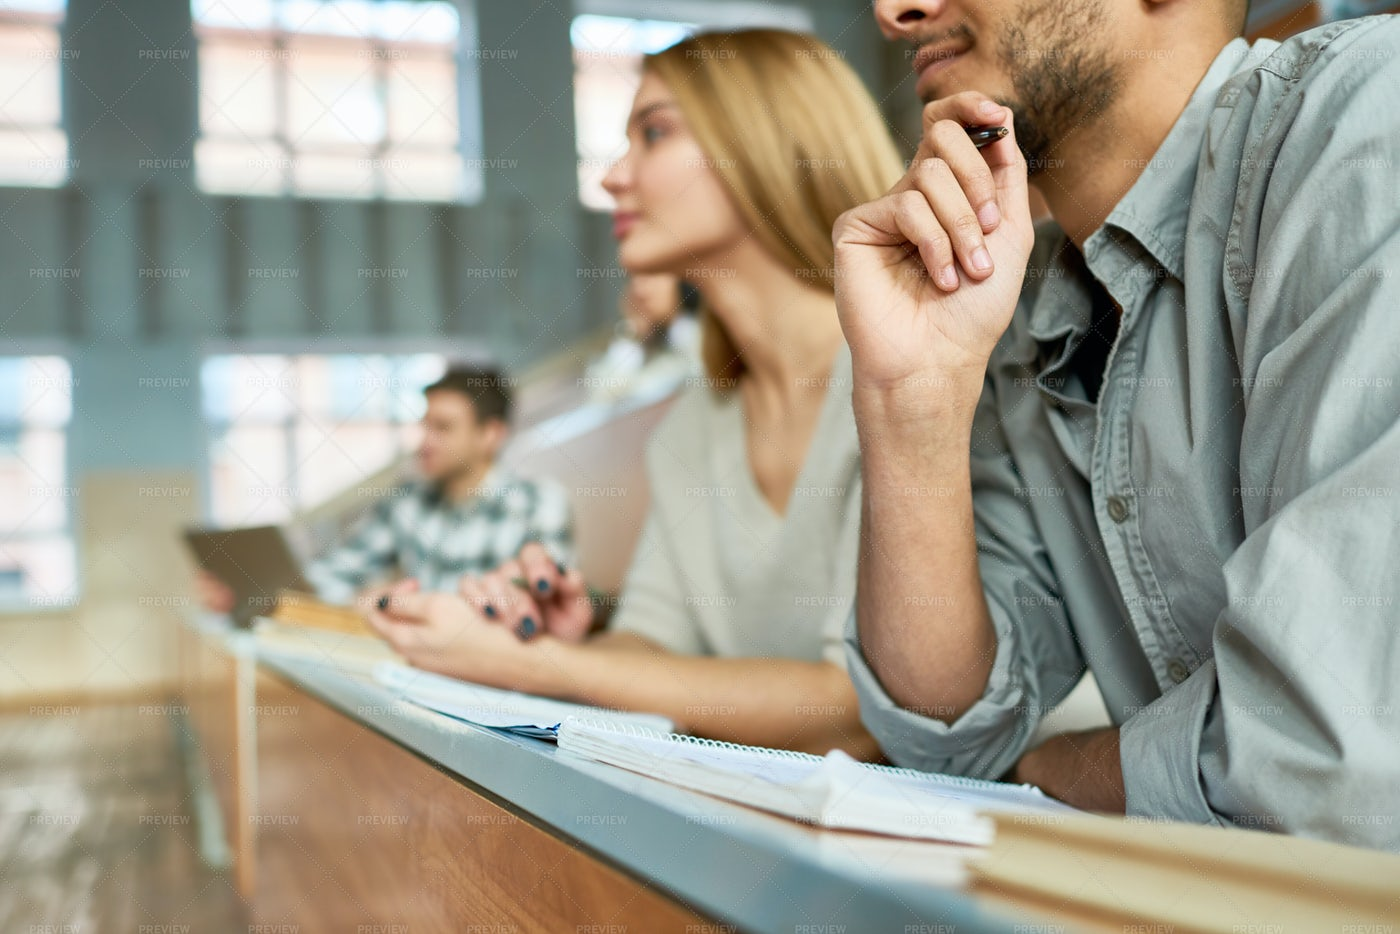 Students Listening To Lecture At...: Stock Photos